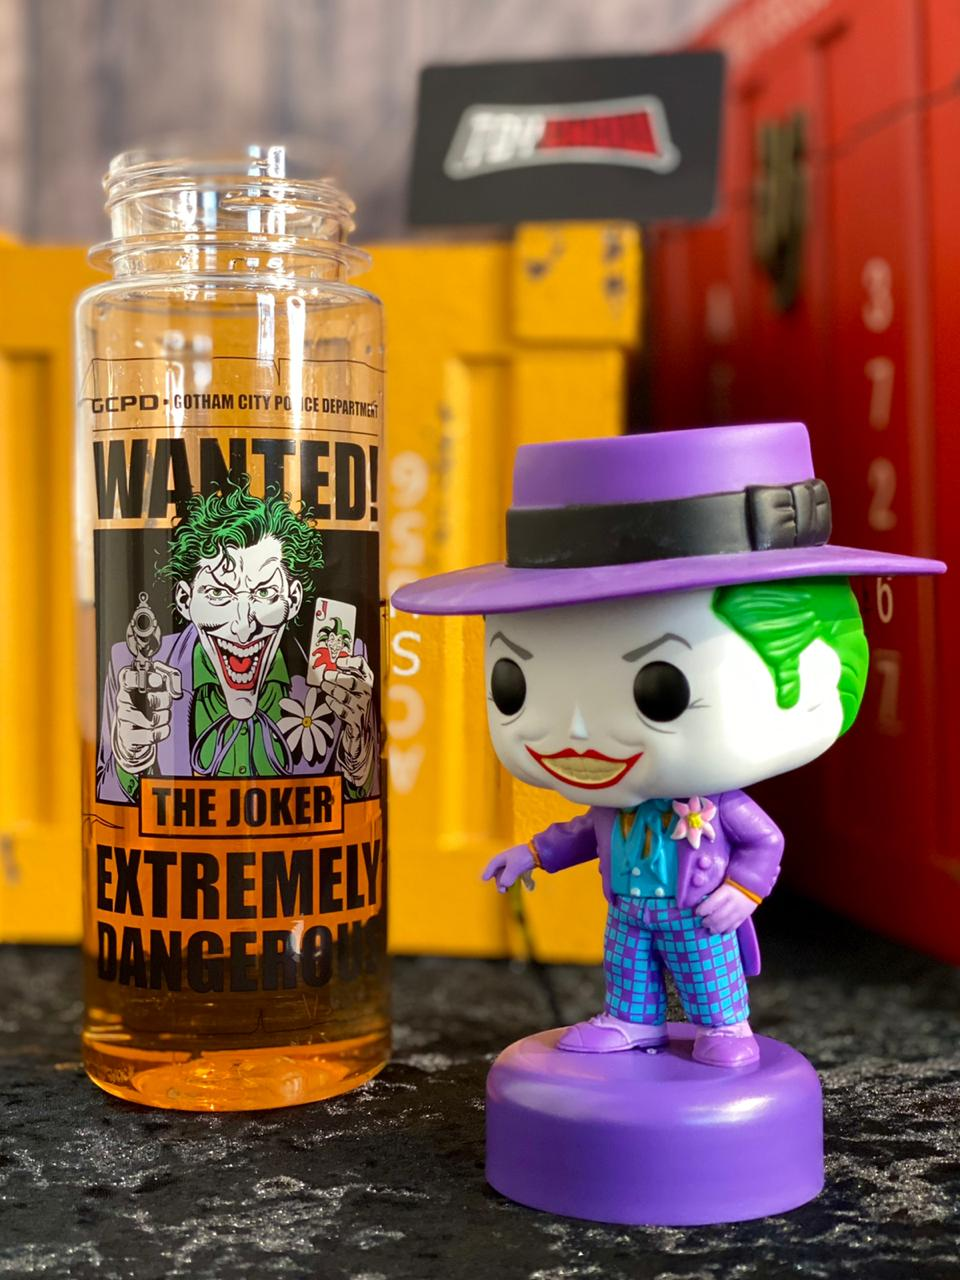 Garrafa (Squeeze):  Coringa '' Wanted! The Joker Extremely Dangerous ''